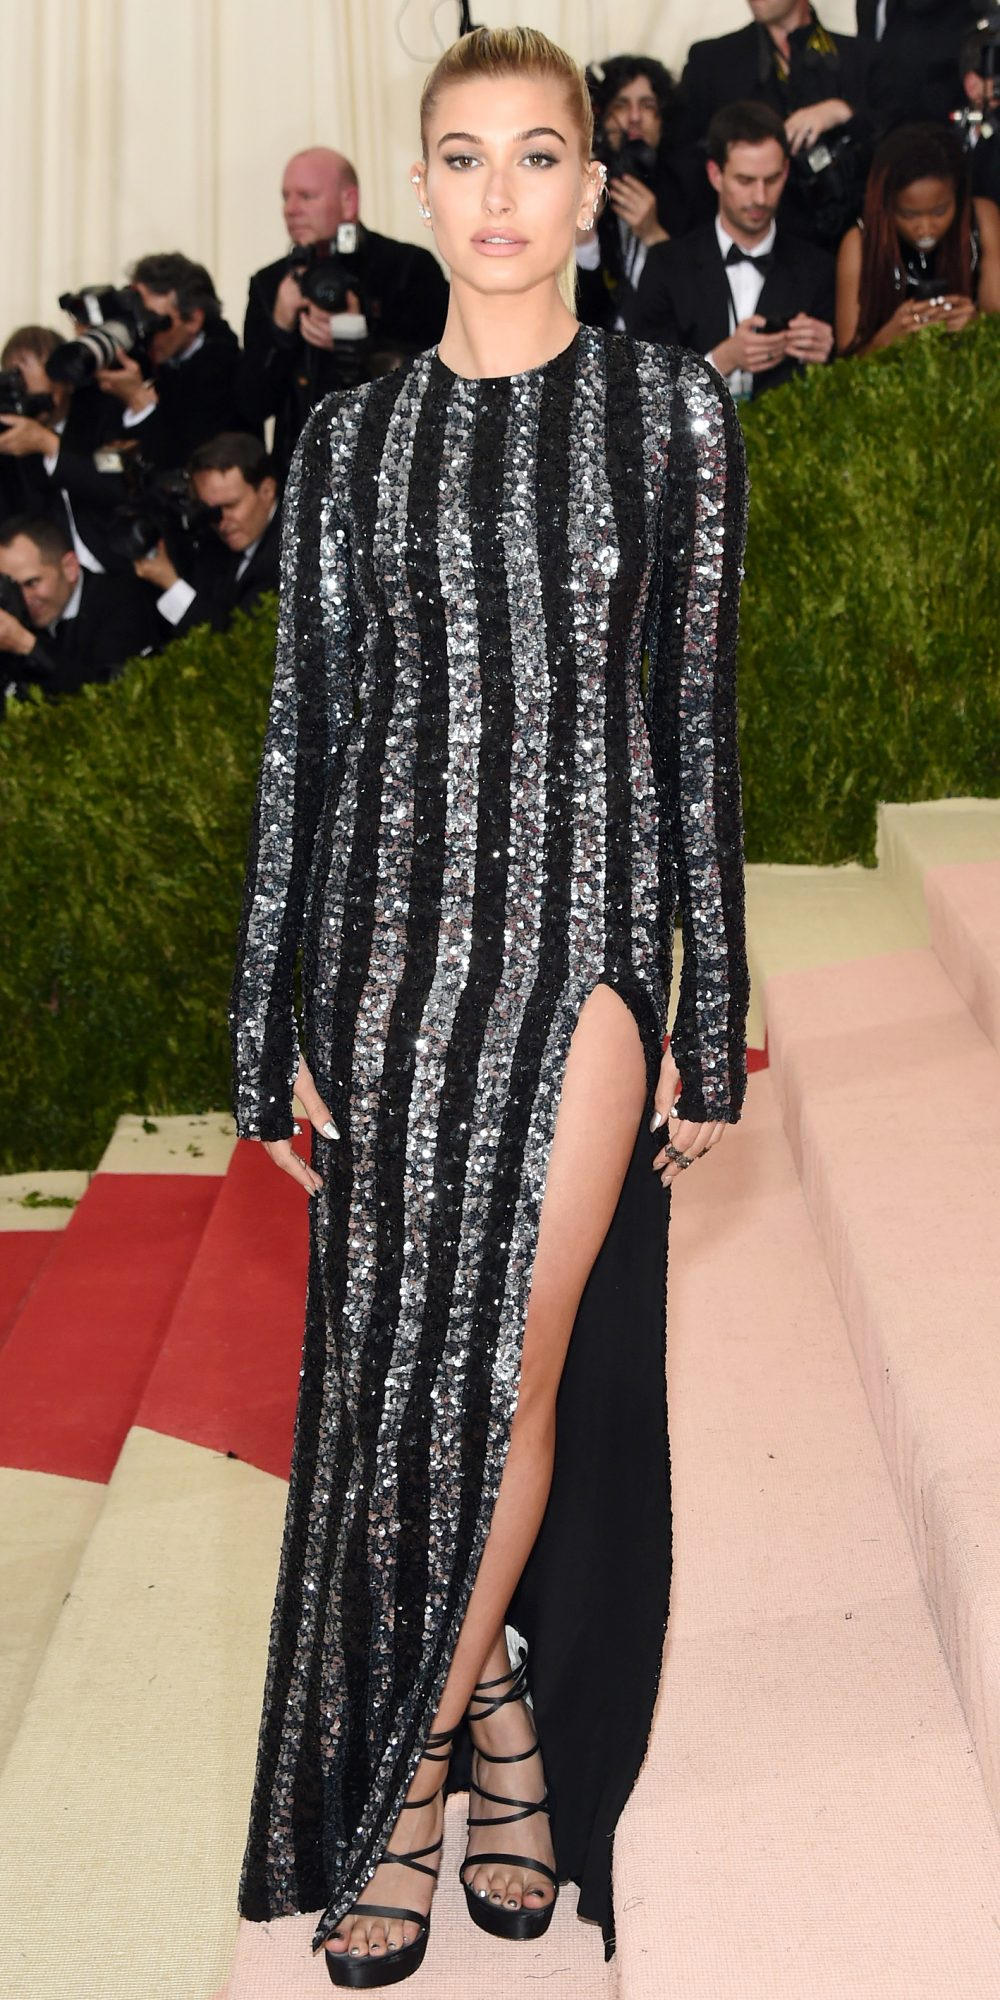 Celebrities Wearing Bling Hailey Baldwin Wears a Long Sleeves Black and Silver Stripes Sequin Gown with High Slit